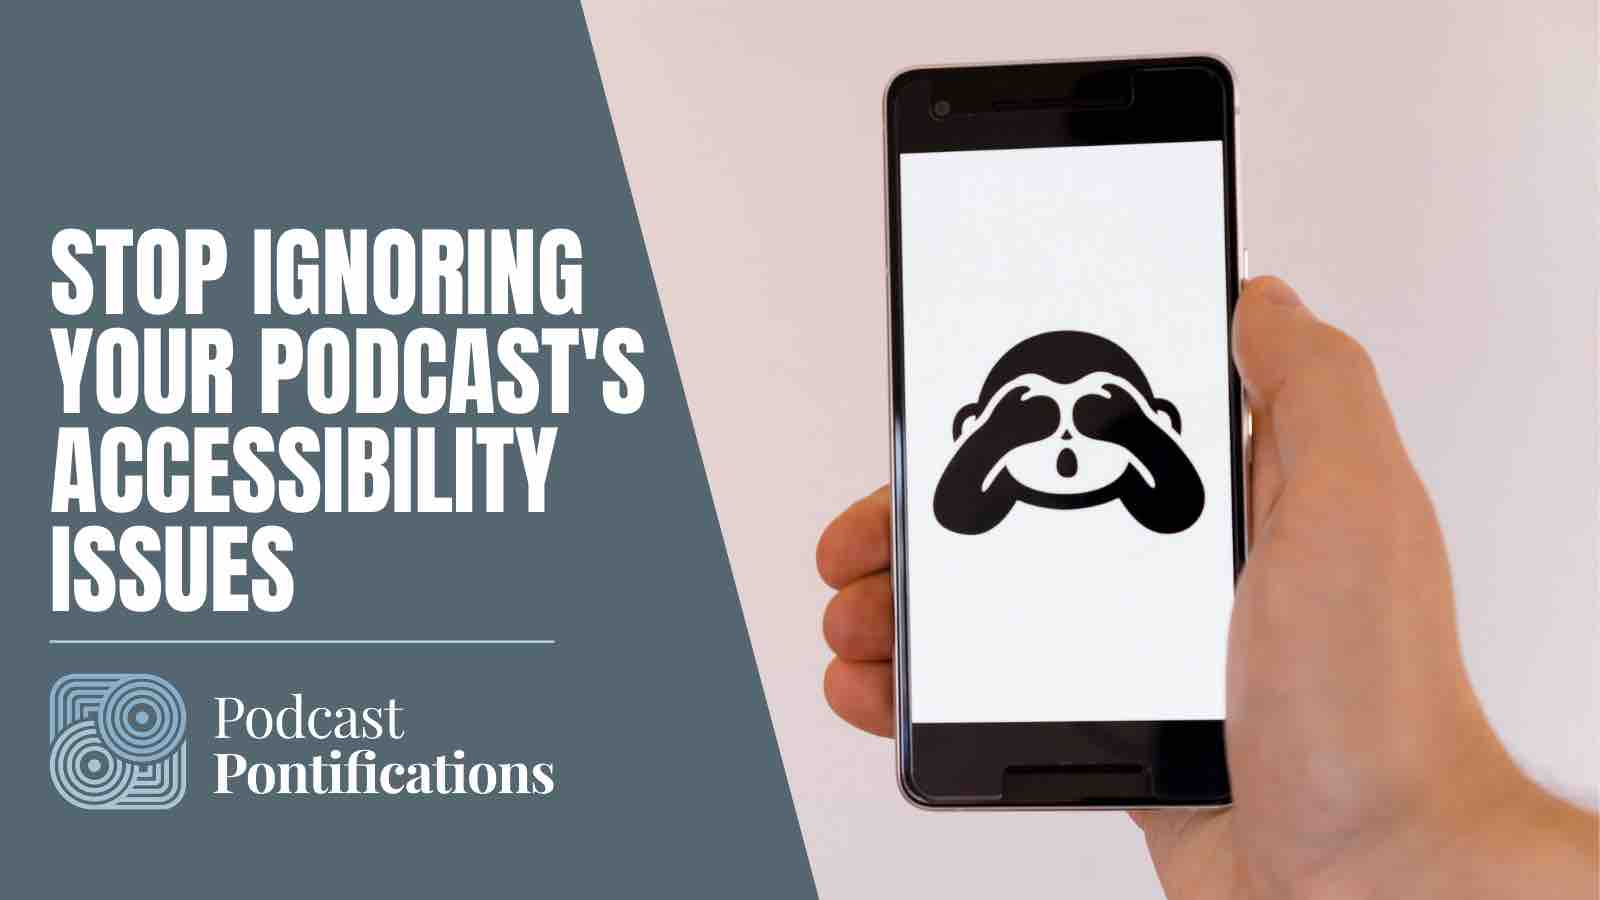 Stop Ignoring Your Podcast's Accessibility Issues